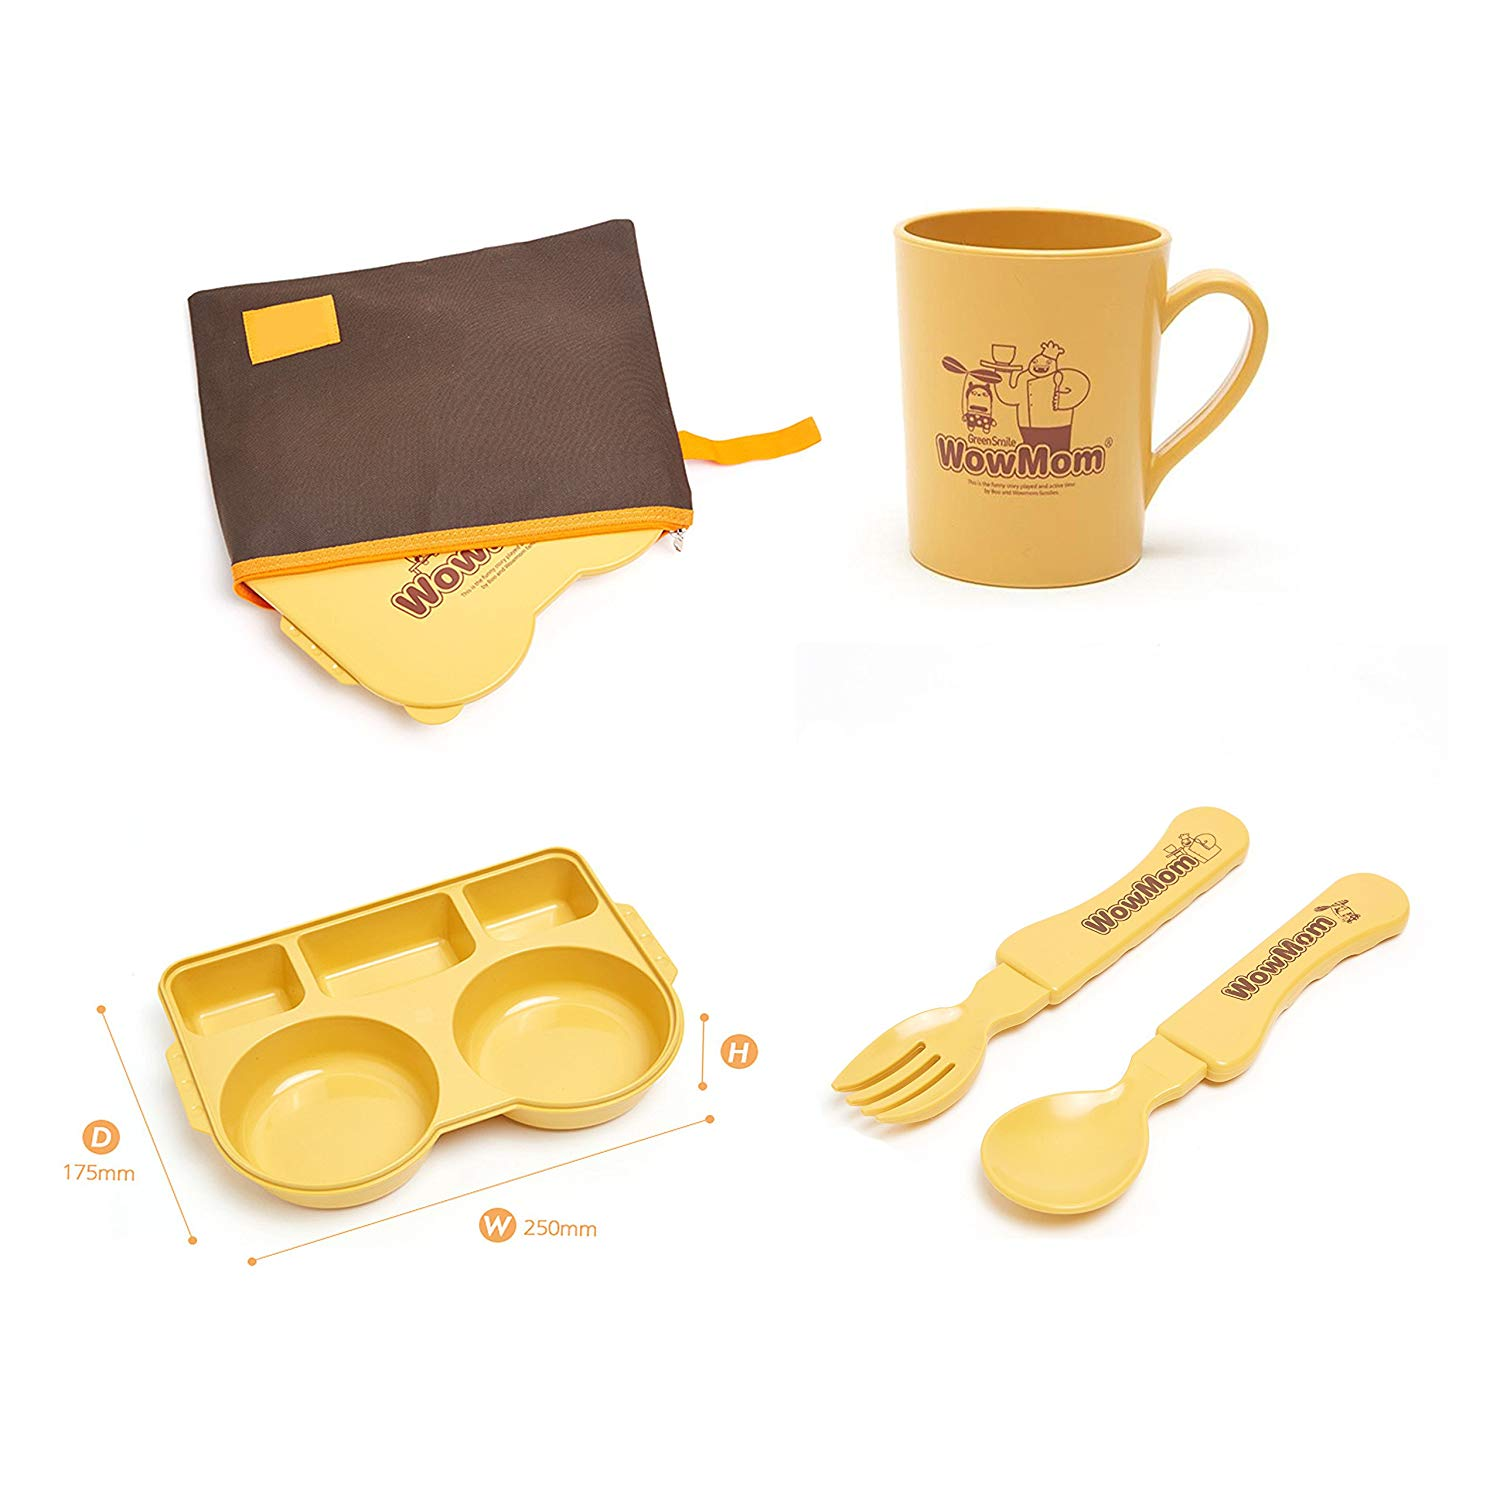 Wowmom Baby Kids Lunchbox+Mug+Spoon+Fork Set/Non-Toxic/Environmental-Friendly, Made of Corn&Bamboo/Dishwasher&Microwave Safe/Made in Korea